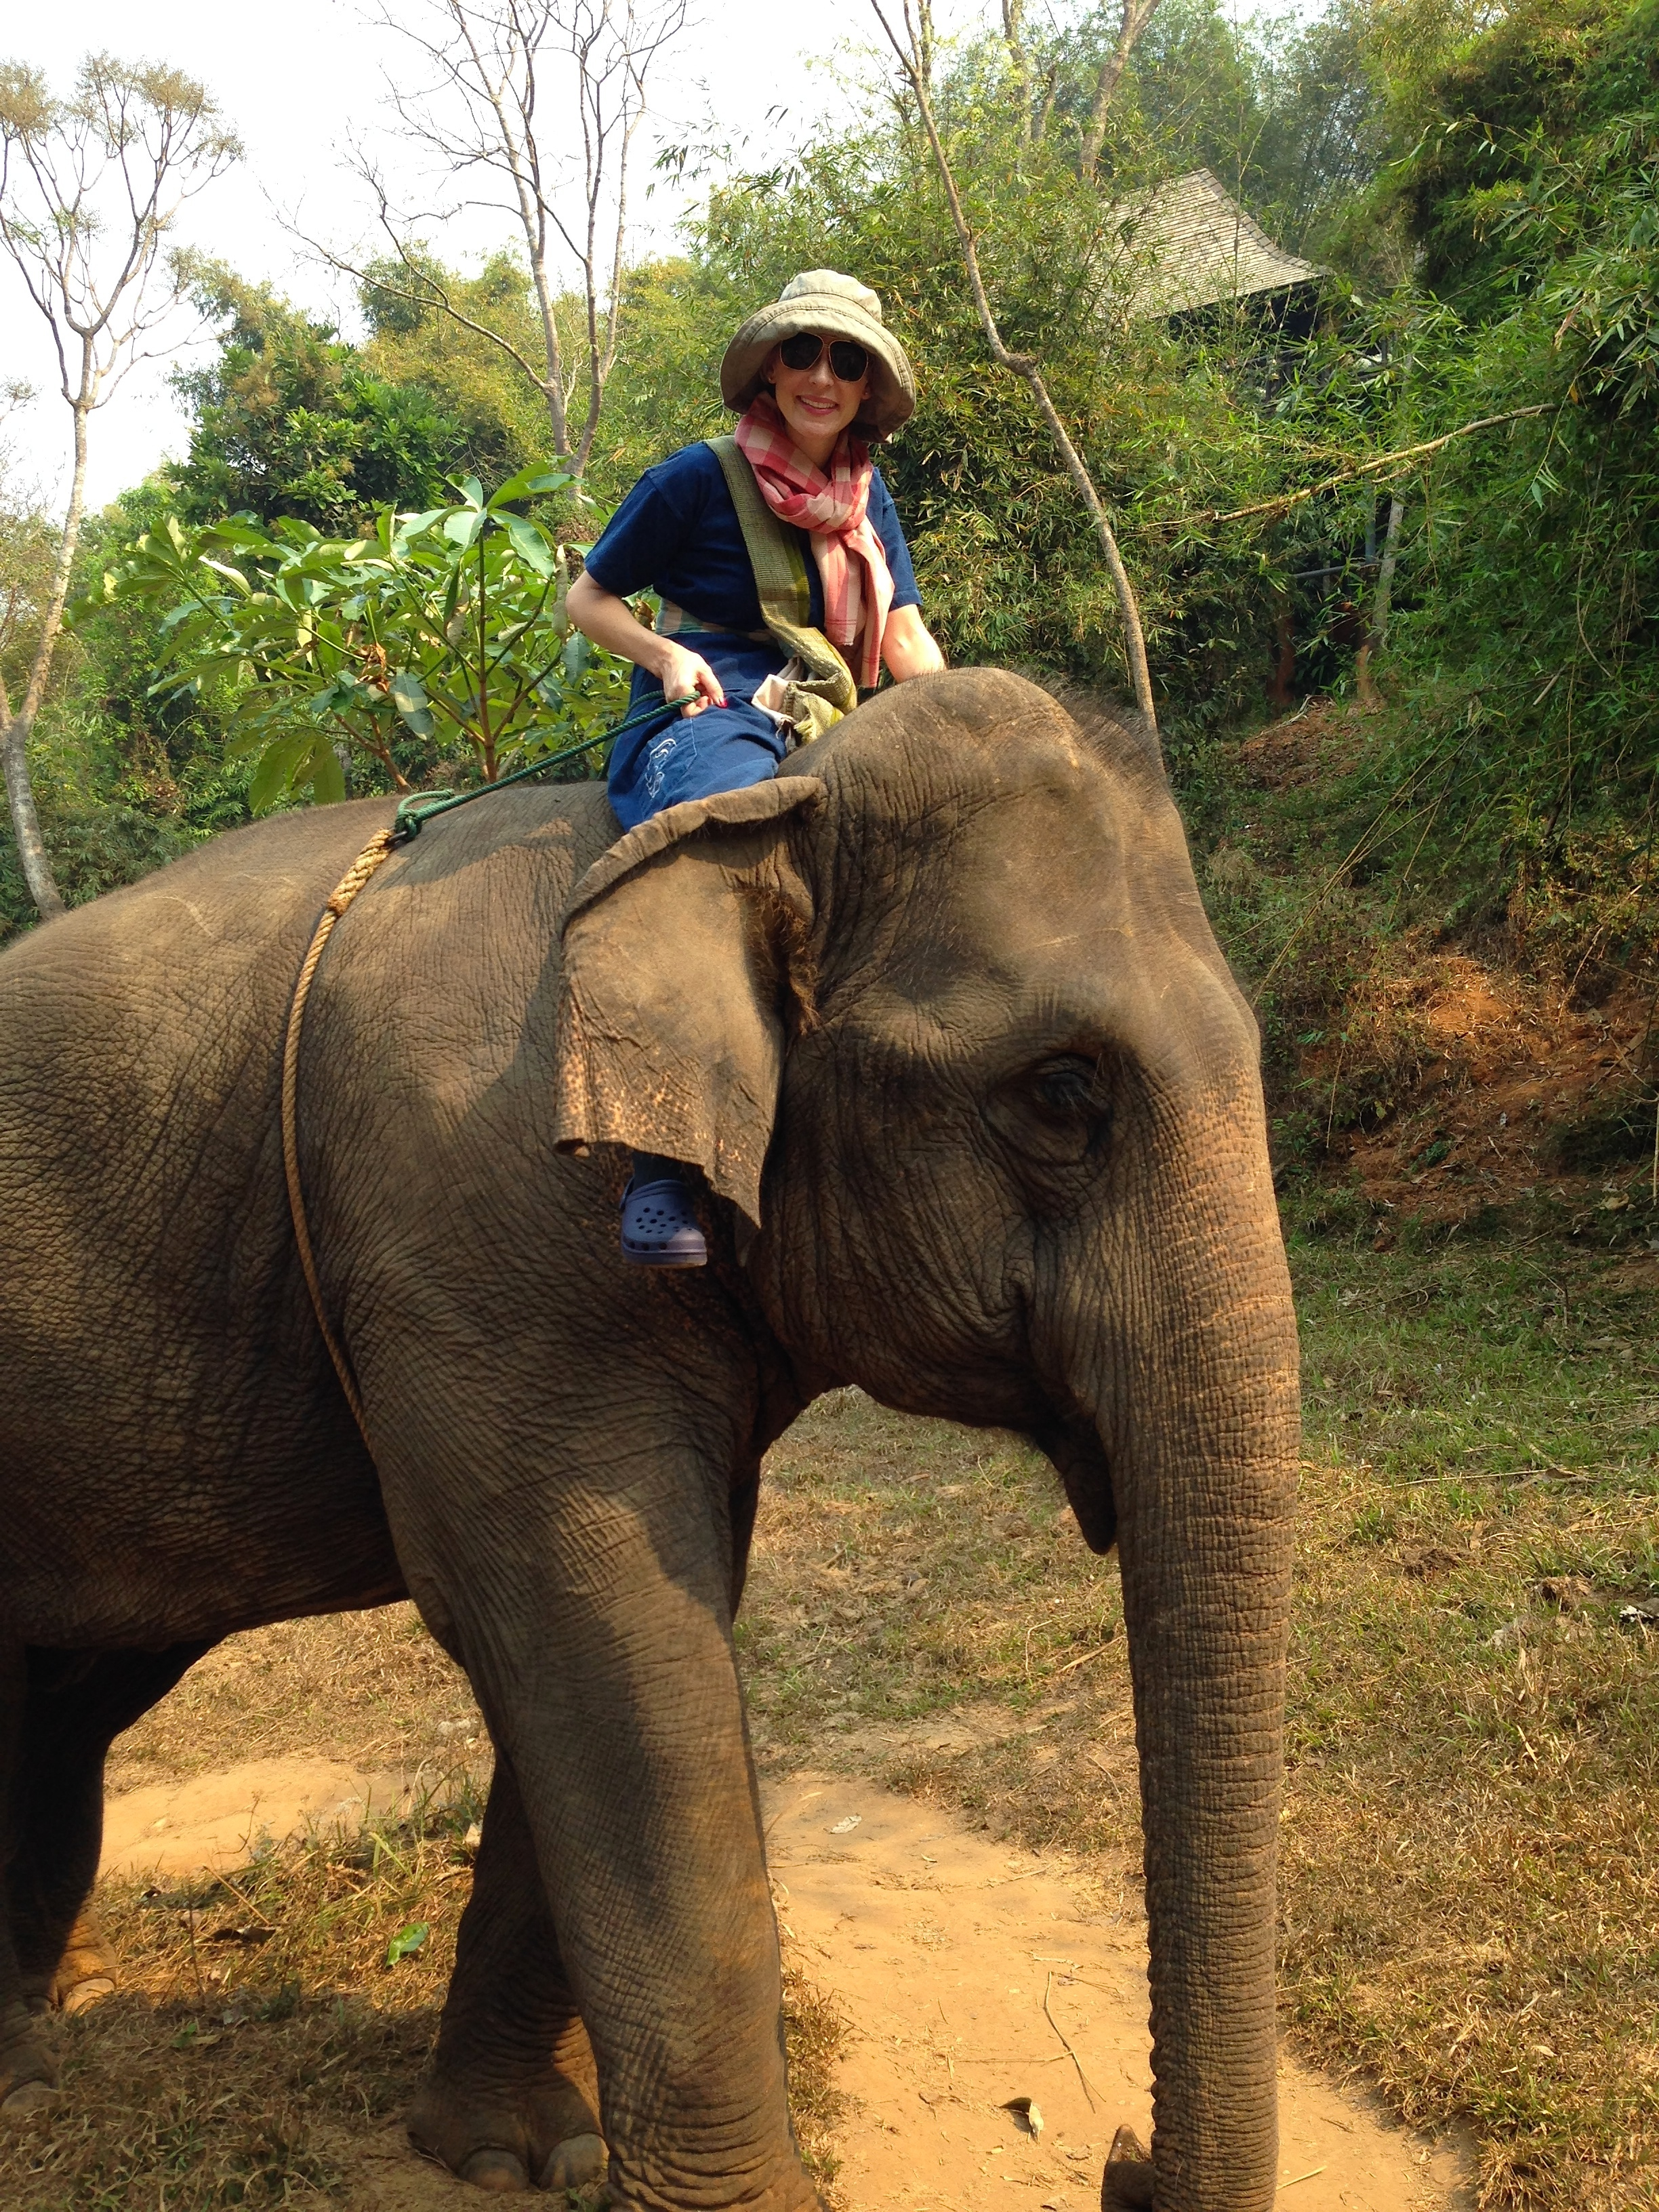 Learning elephant-riding commands. Note the amazing denim getup: Traditional crop pants, a short-sleeve button-up shirt and a waist sash. If you spot Crocs on my feet, you're not mistaken. Each guest is given a pair to use while trekking. This is one of the ONLY instances wearing crocs is remotely acceptable in my trip stylin' lookbook.